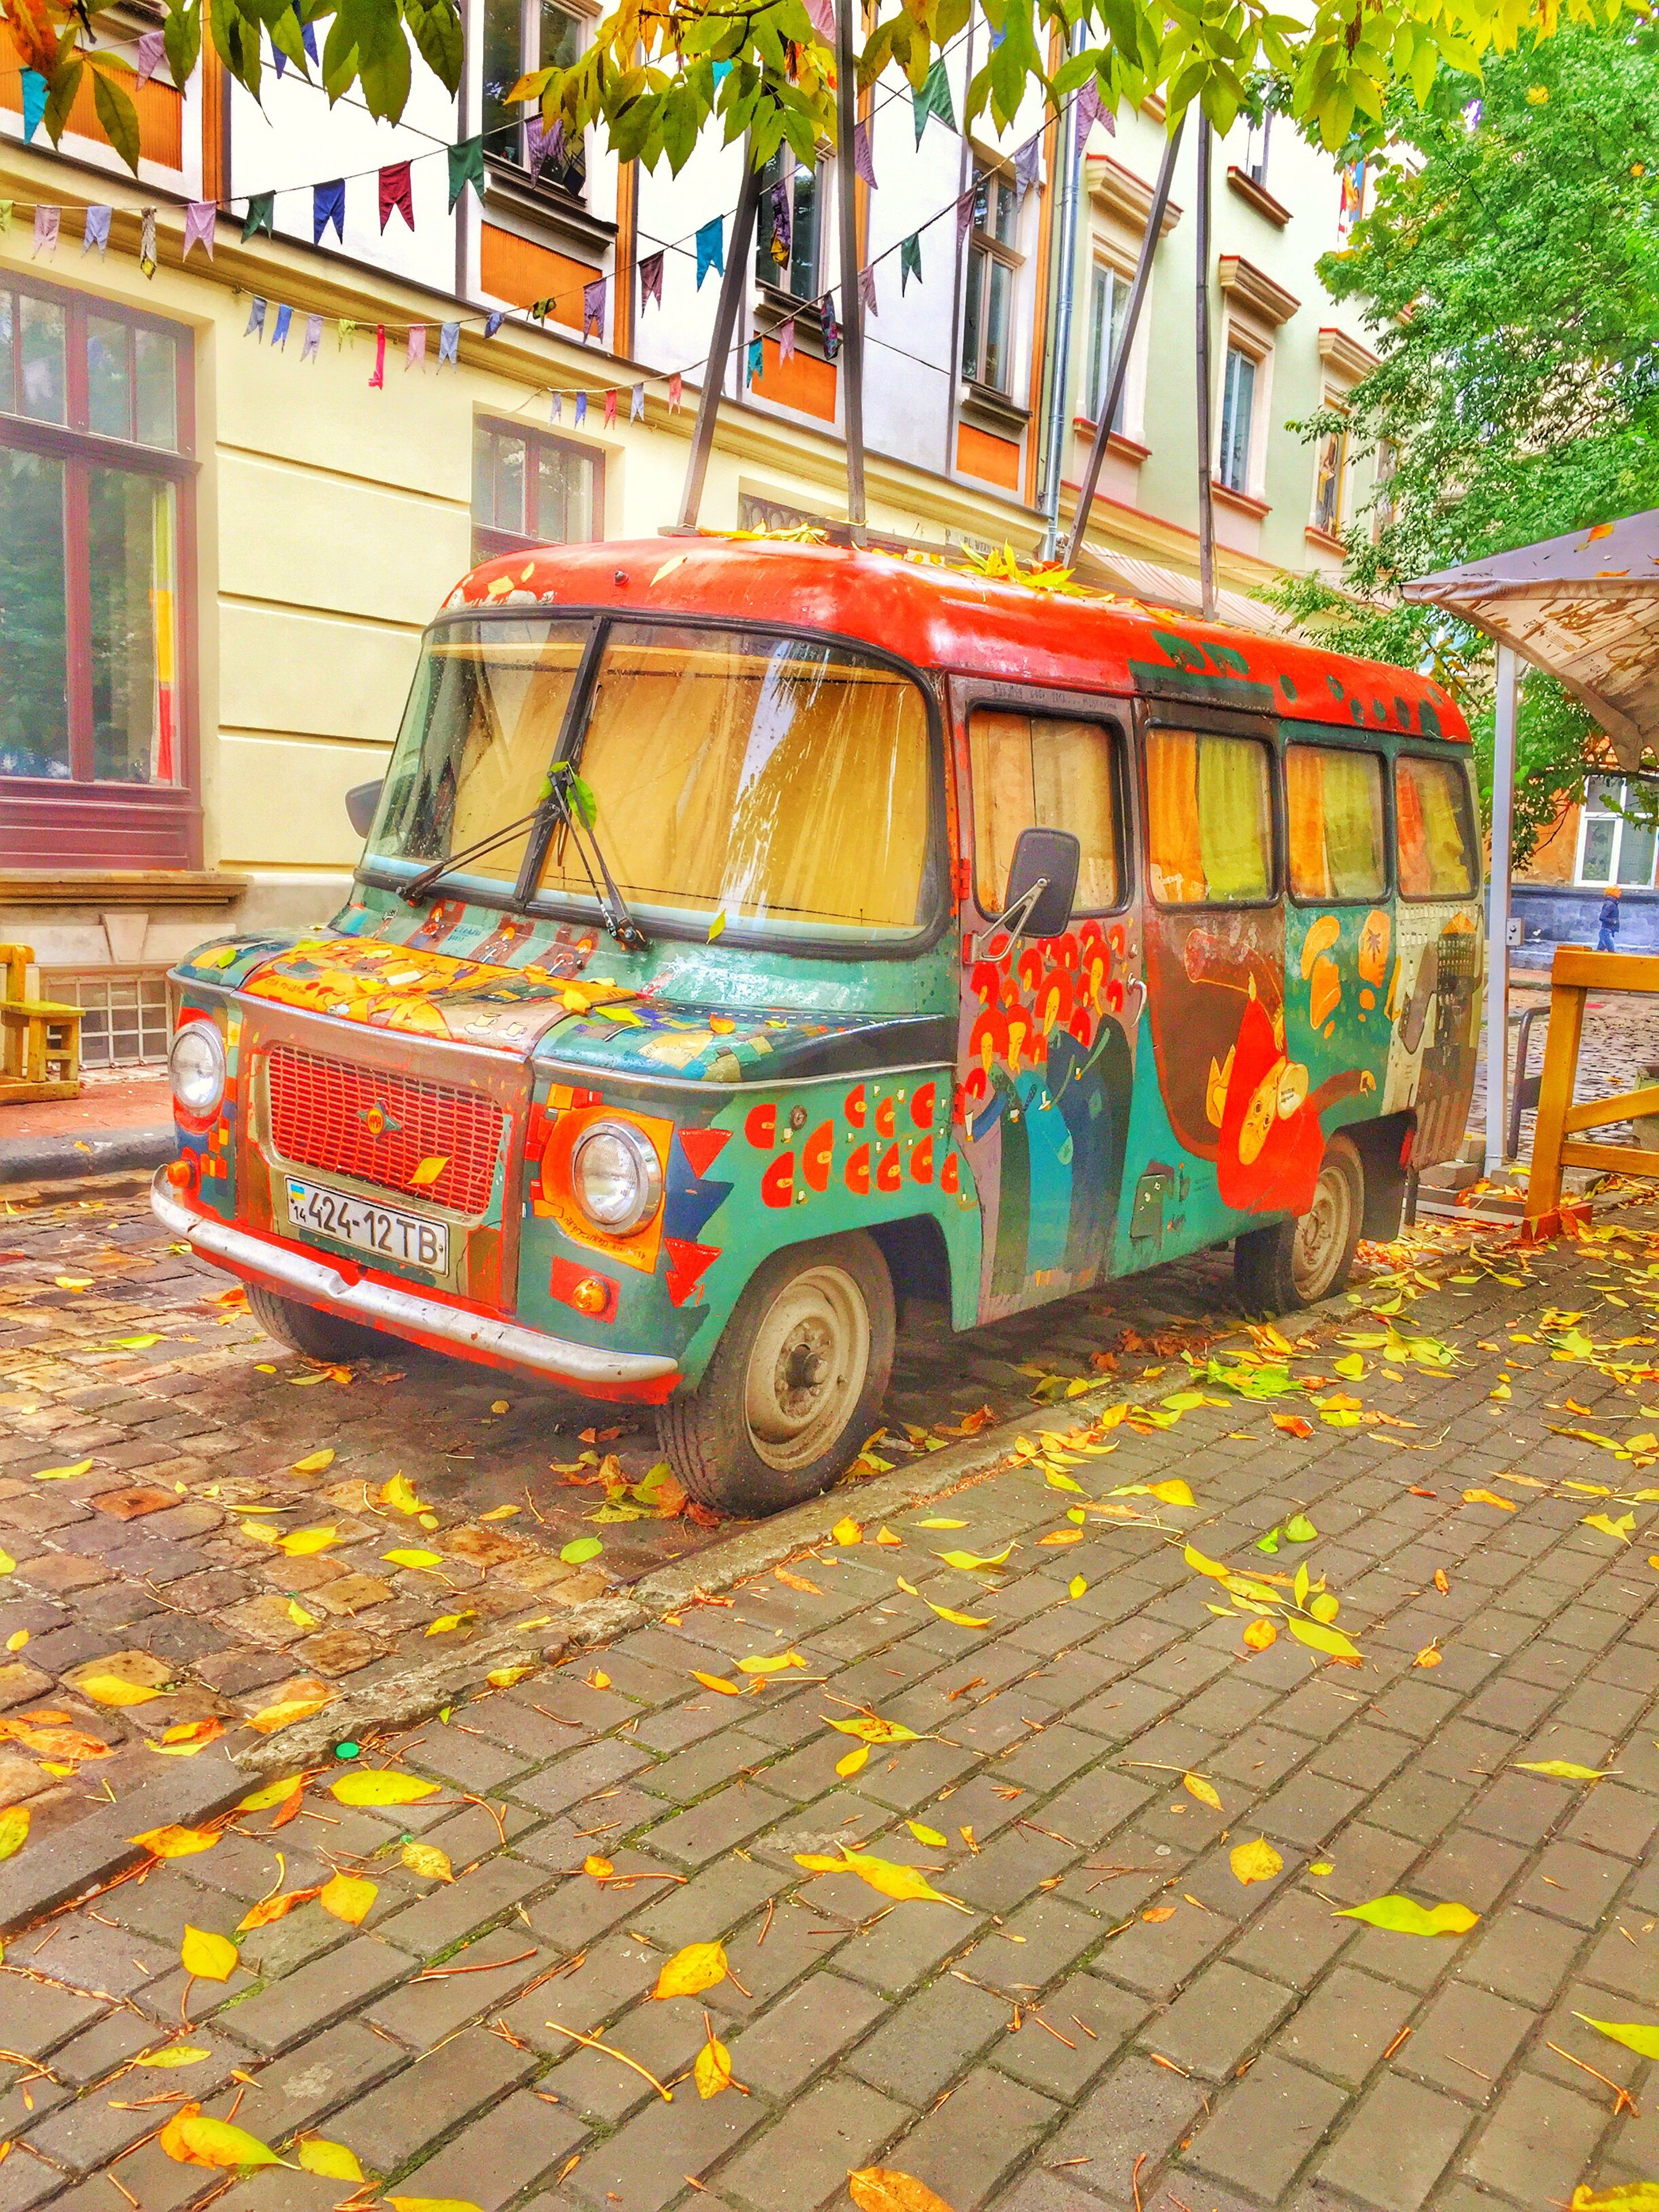 transportation, architecture, built structure, mode of transport, building exterior, day, multi colored, outdoors, abundance, paving stone, creativity, facade, retail